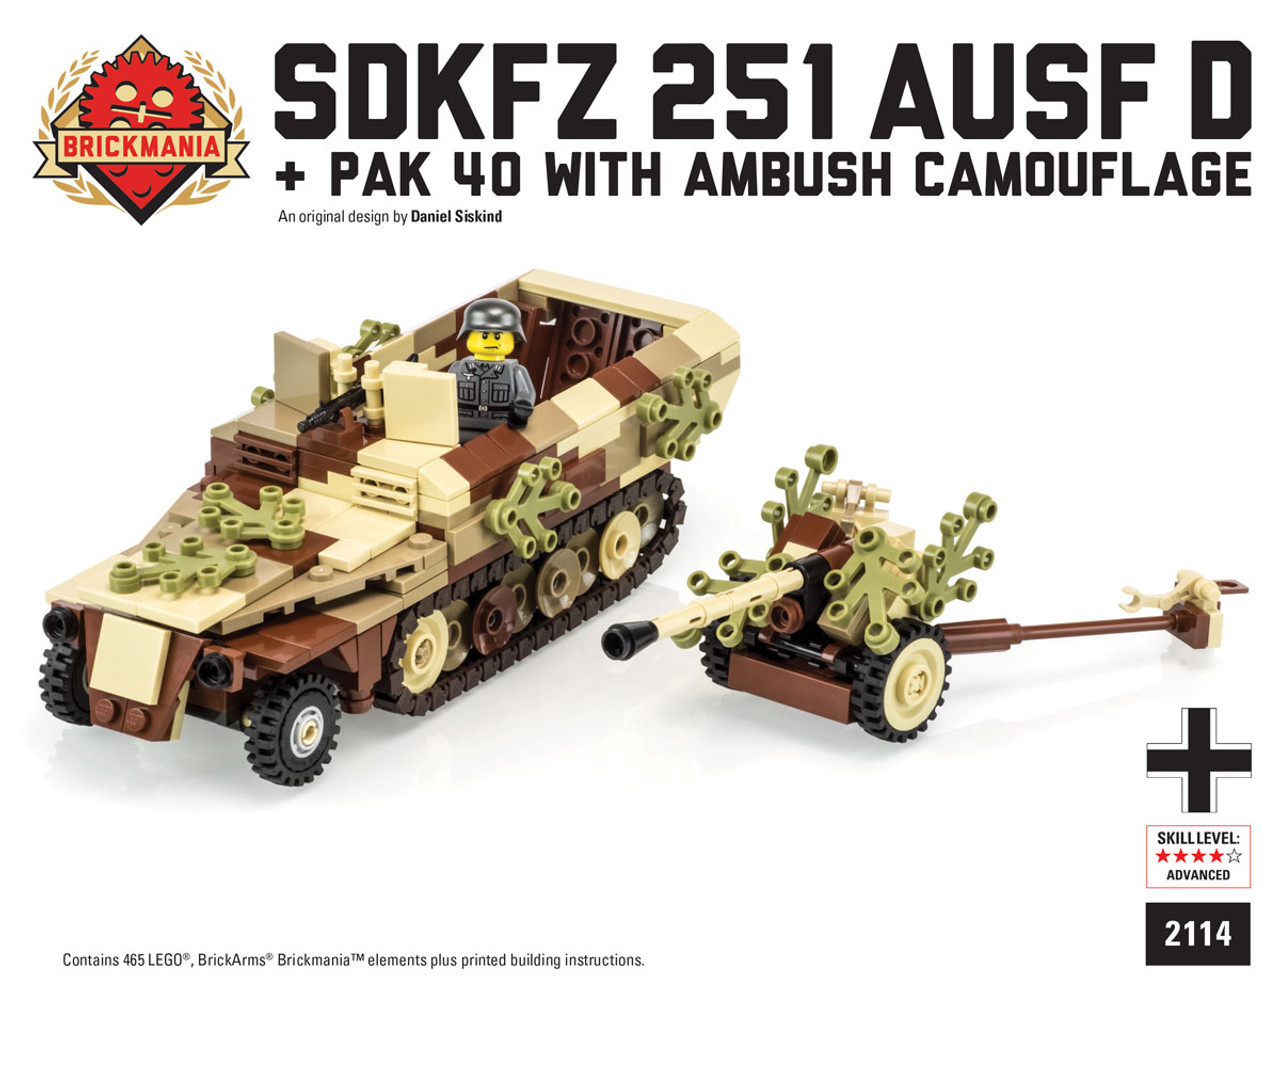 SdKfz 251 ausf D + Pak 40 with Ambush Camo